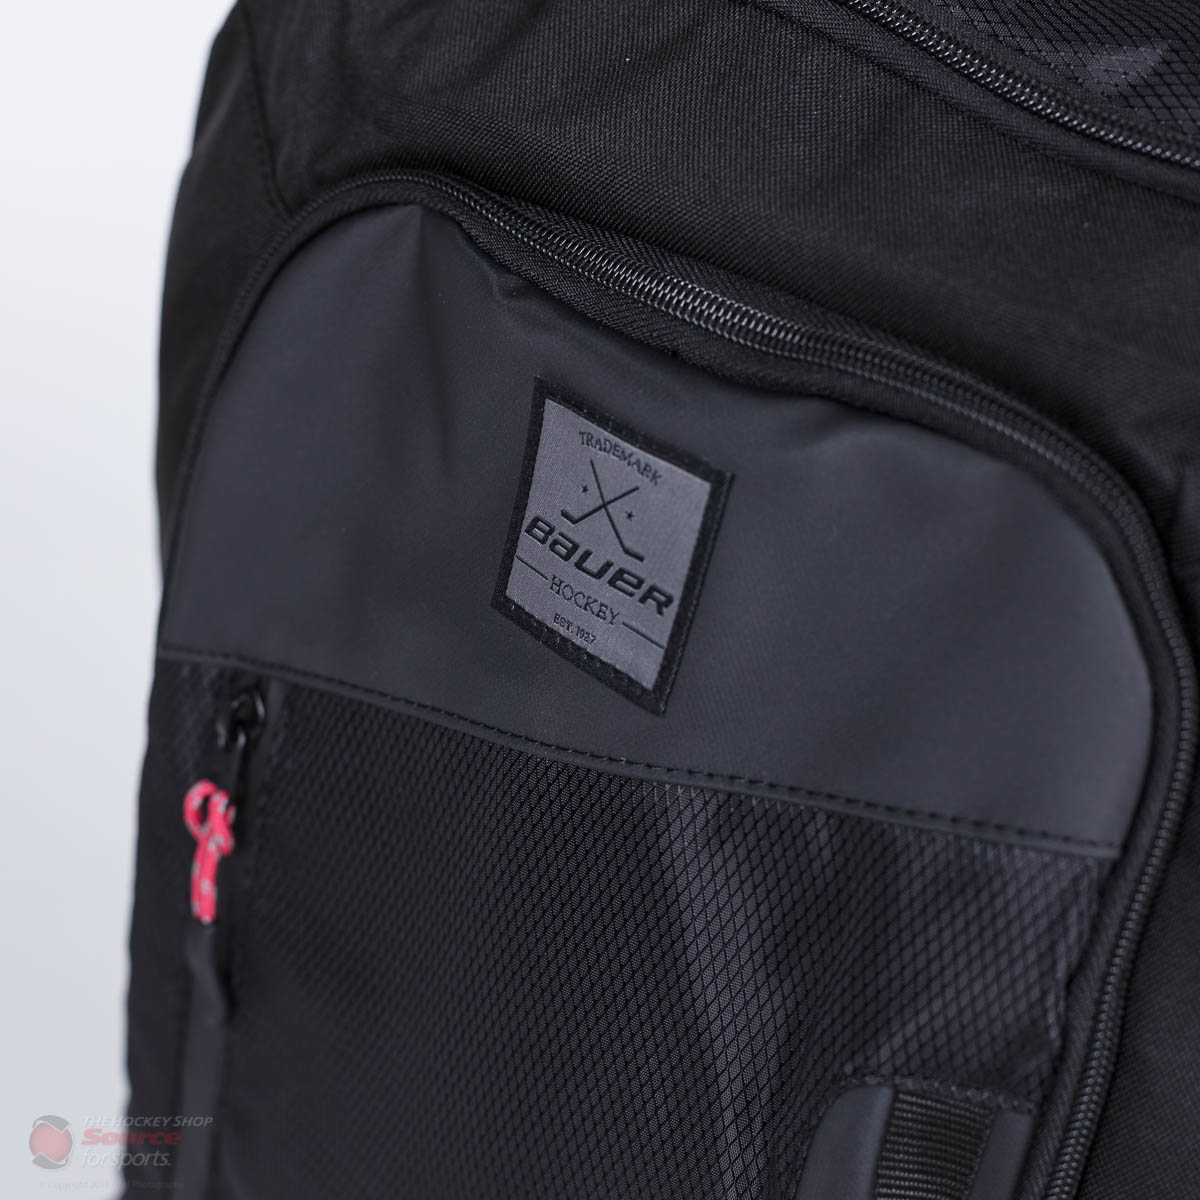 Bauer Laptop Backpack – The Hockey Shop Source For Sports 8a82e812ad1ce